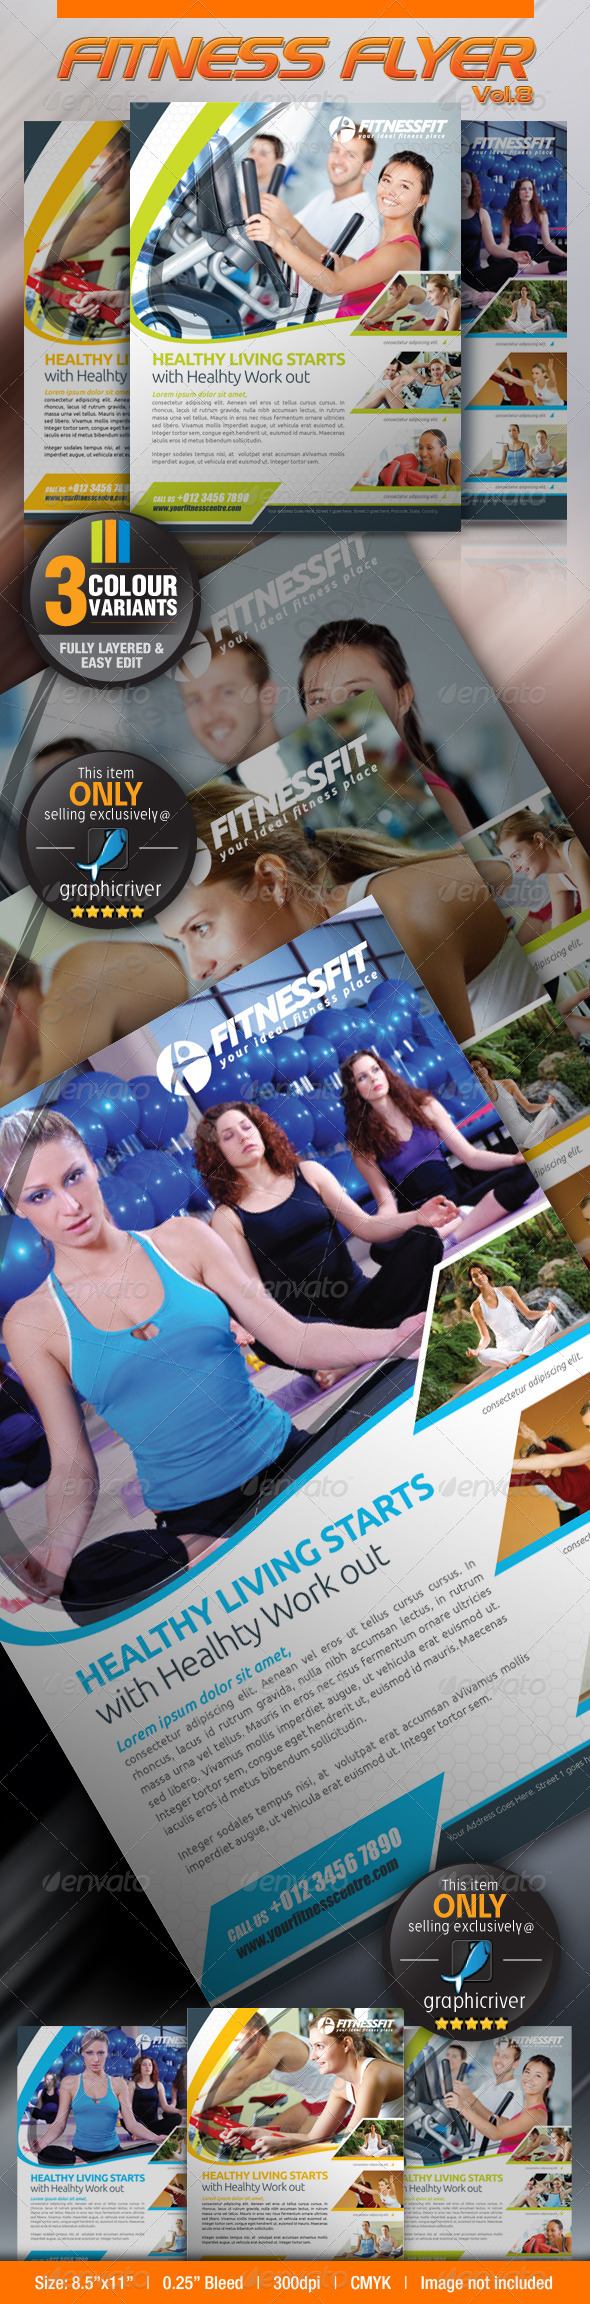 Fitness Flyer Vol.8 - Sports Events